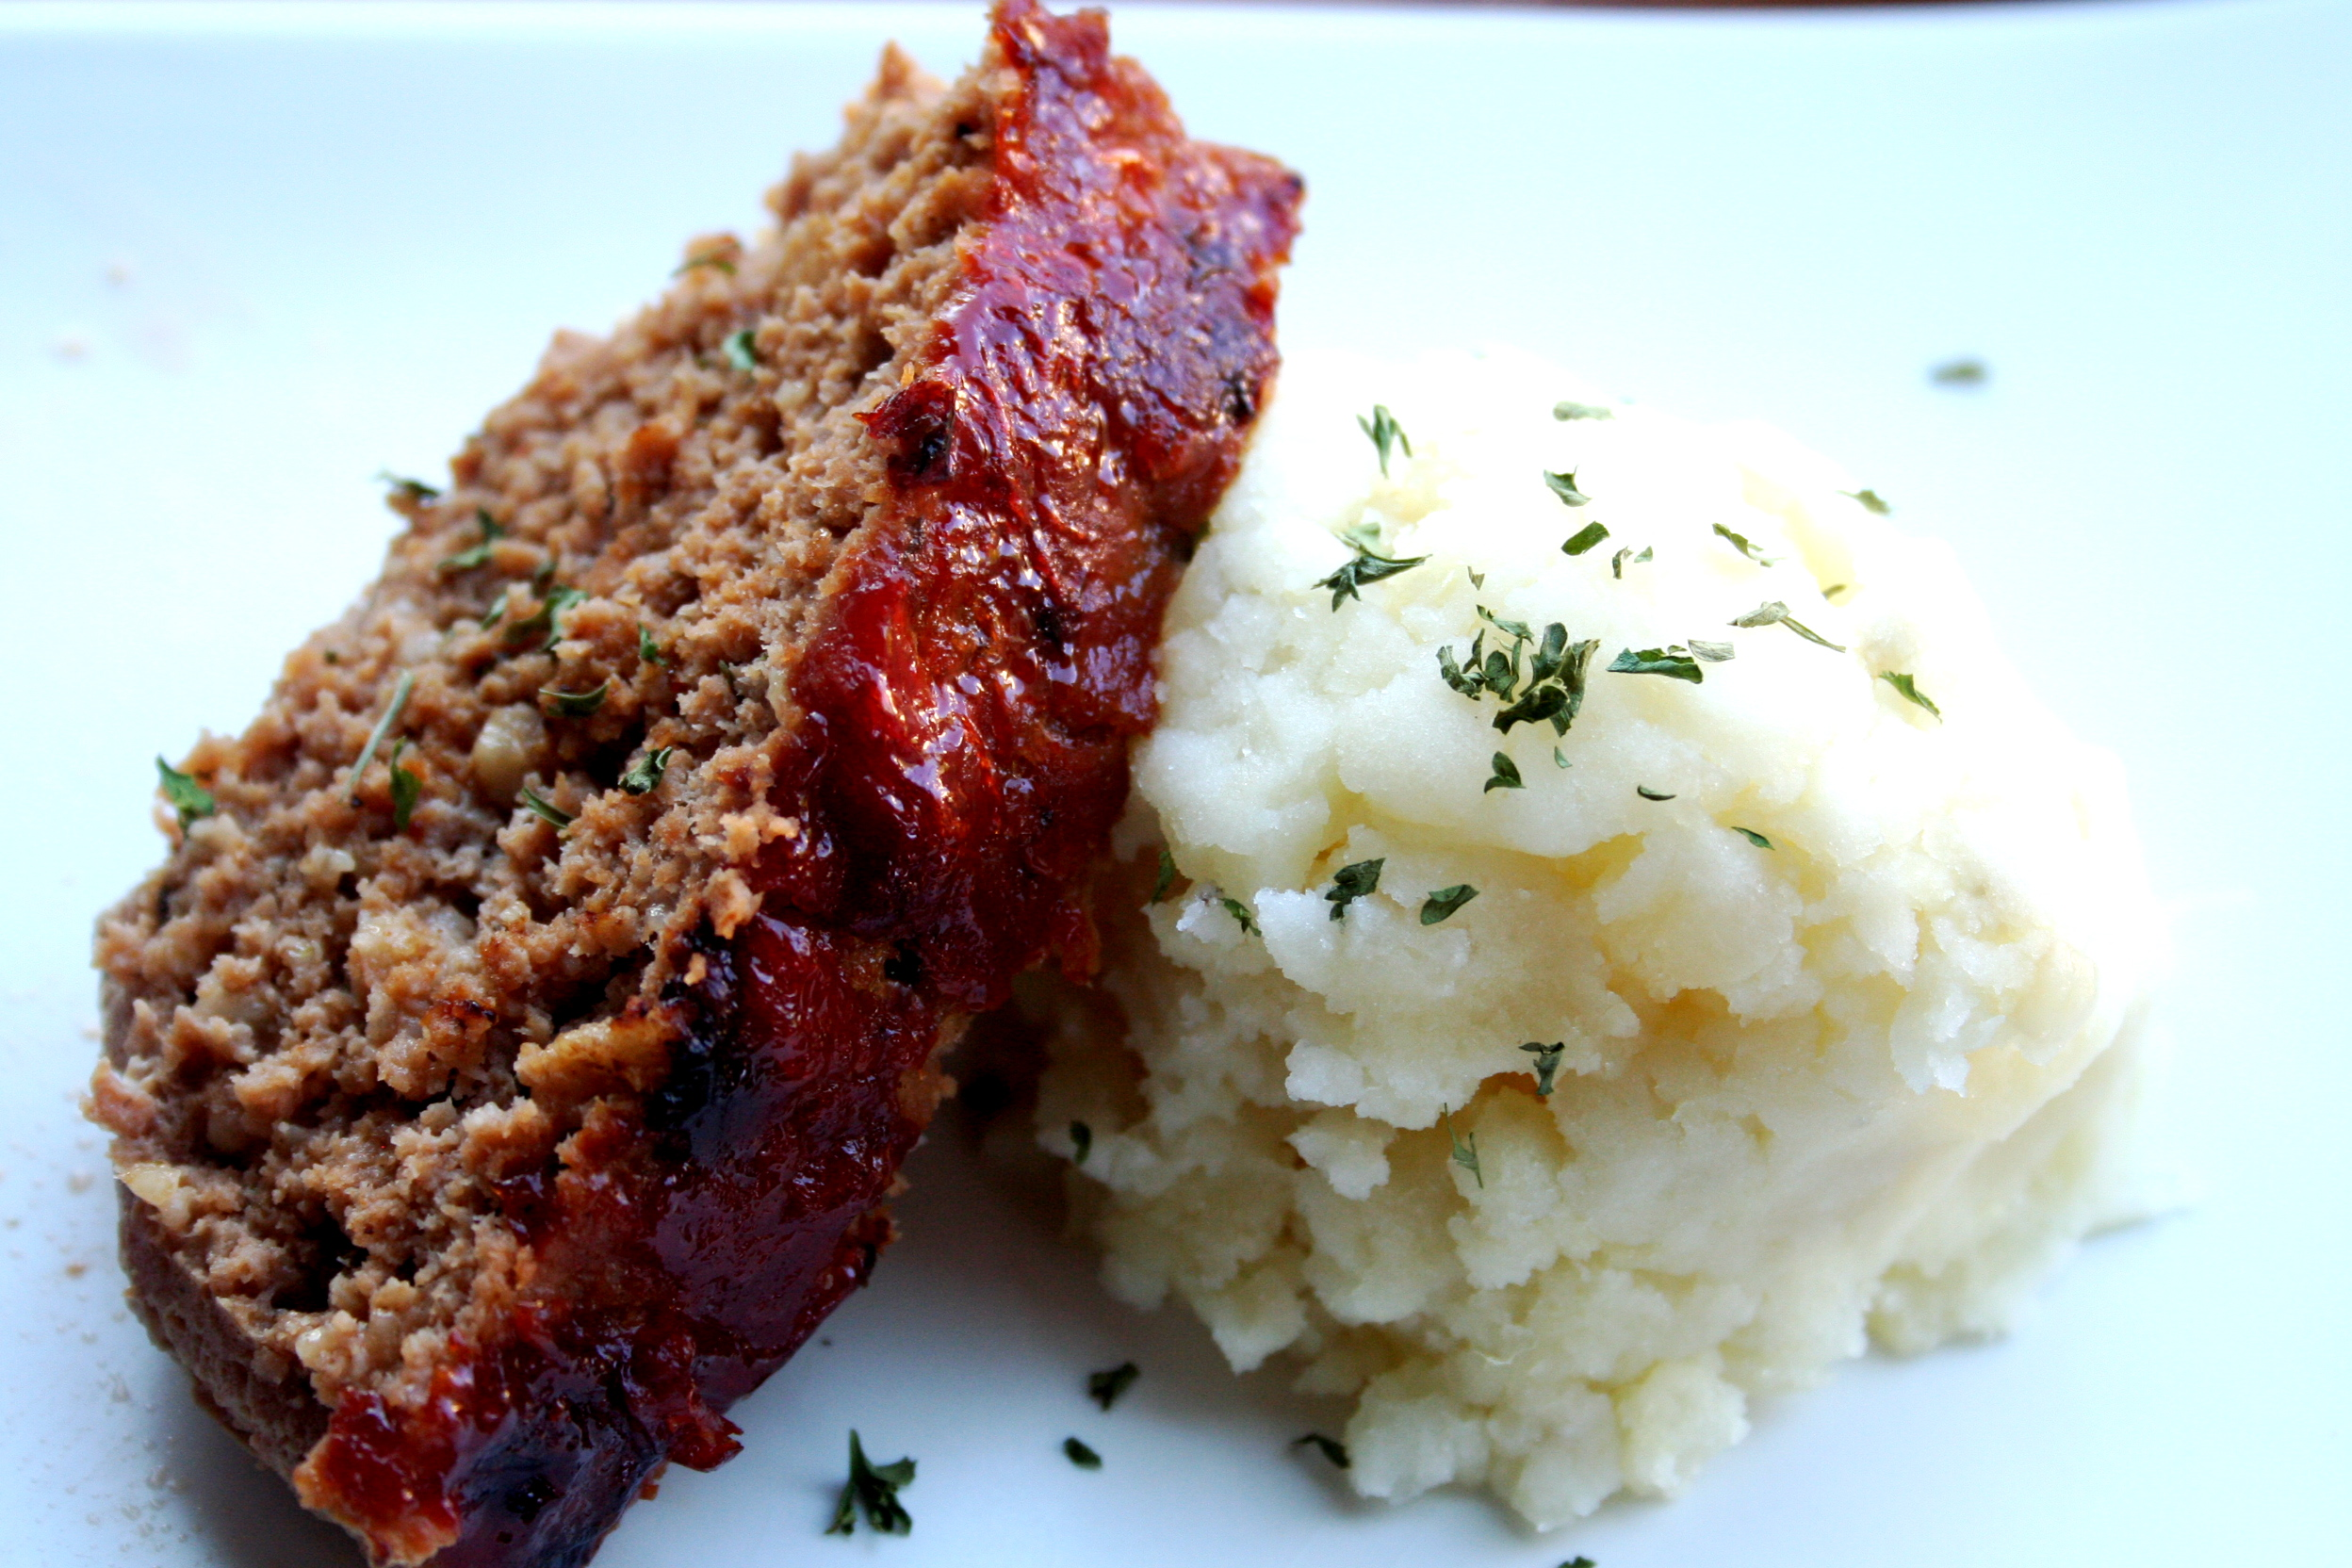 ... 1950's housewife meal: meatloaf + mashed potatoes - Urban Bliss Life